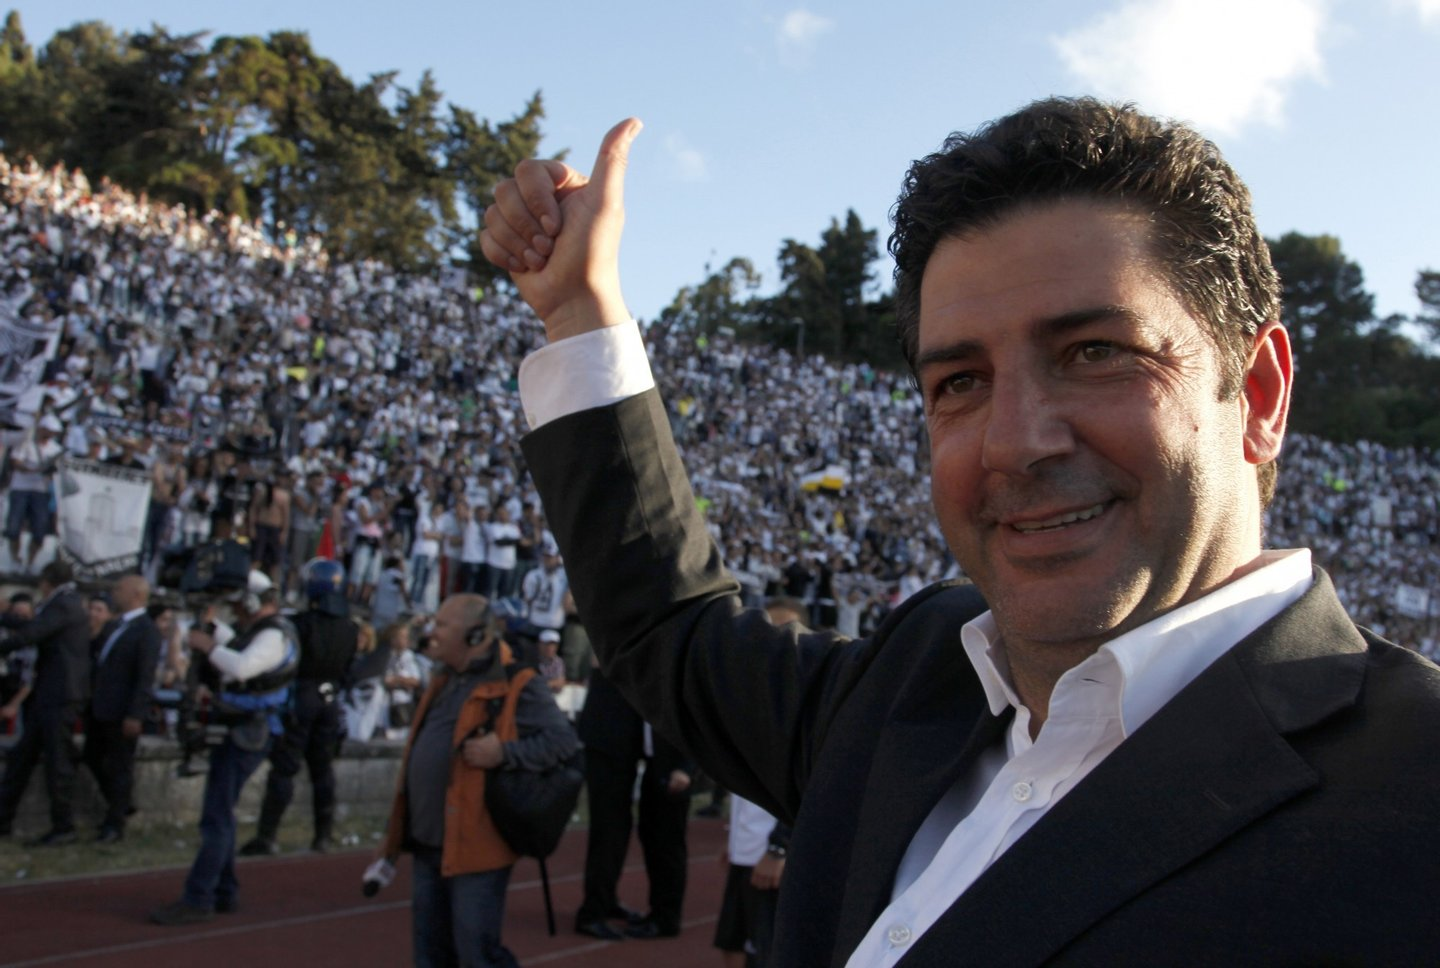 Guimaraes' coach Rui Vitoria celebrates after winning the Portuguese Cup final match SL Benfica vs VSC Guimaraes at the Jamor stadium in Oeiras, outskirts of Lisbon, on May 26, 2013. Guimaraes won the match 2-1.  AFP PHOTO / HENRIQUES DA CUNHA        (Photo credit should read HENRIQUES DA CUNHA/AFP/Getty Images)